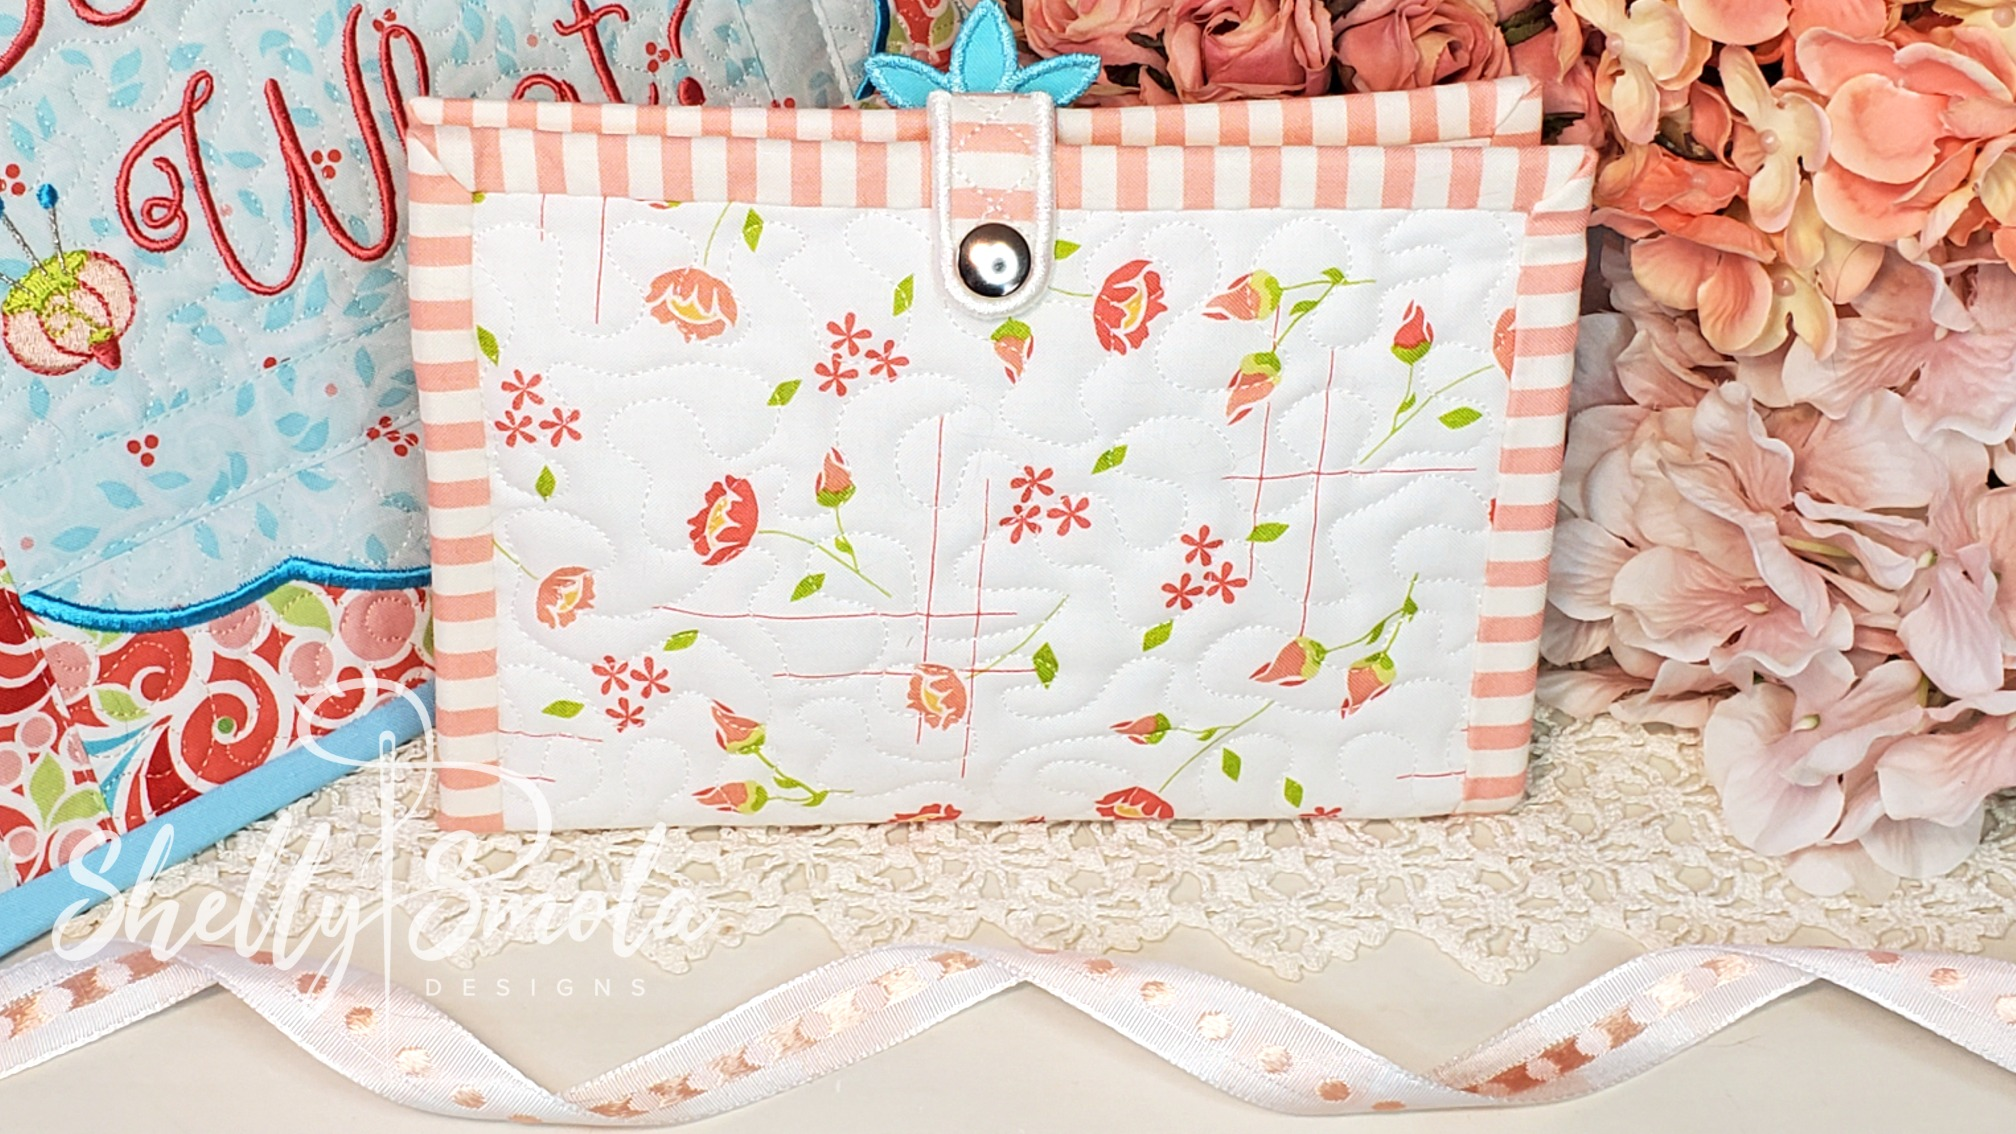 Sew Girly Makeup Case Back by Shelly Smola